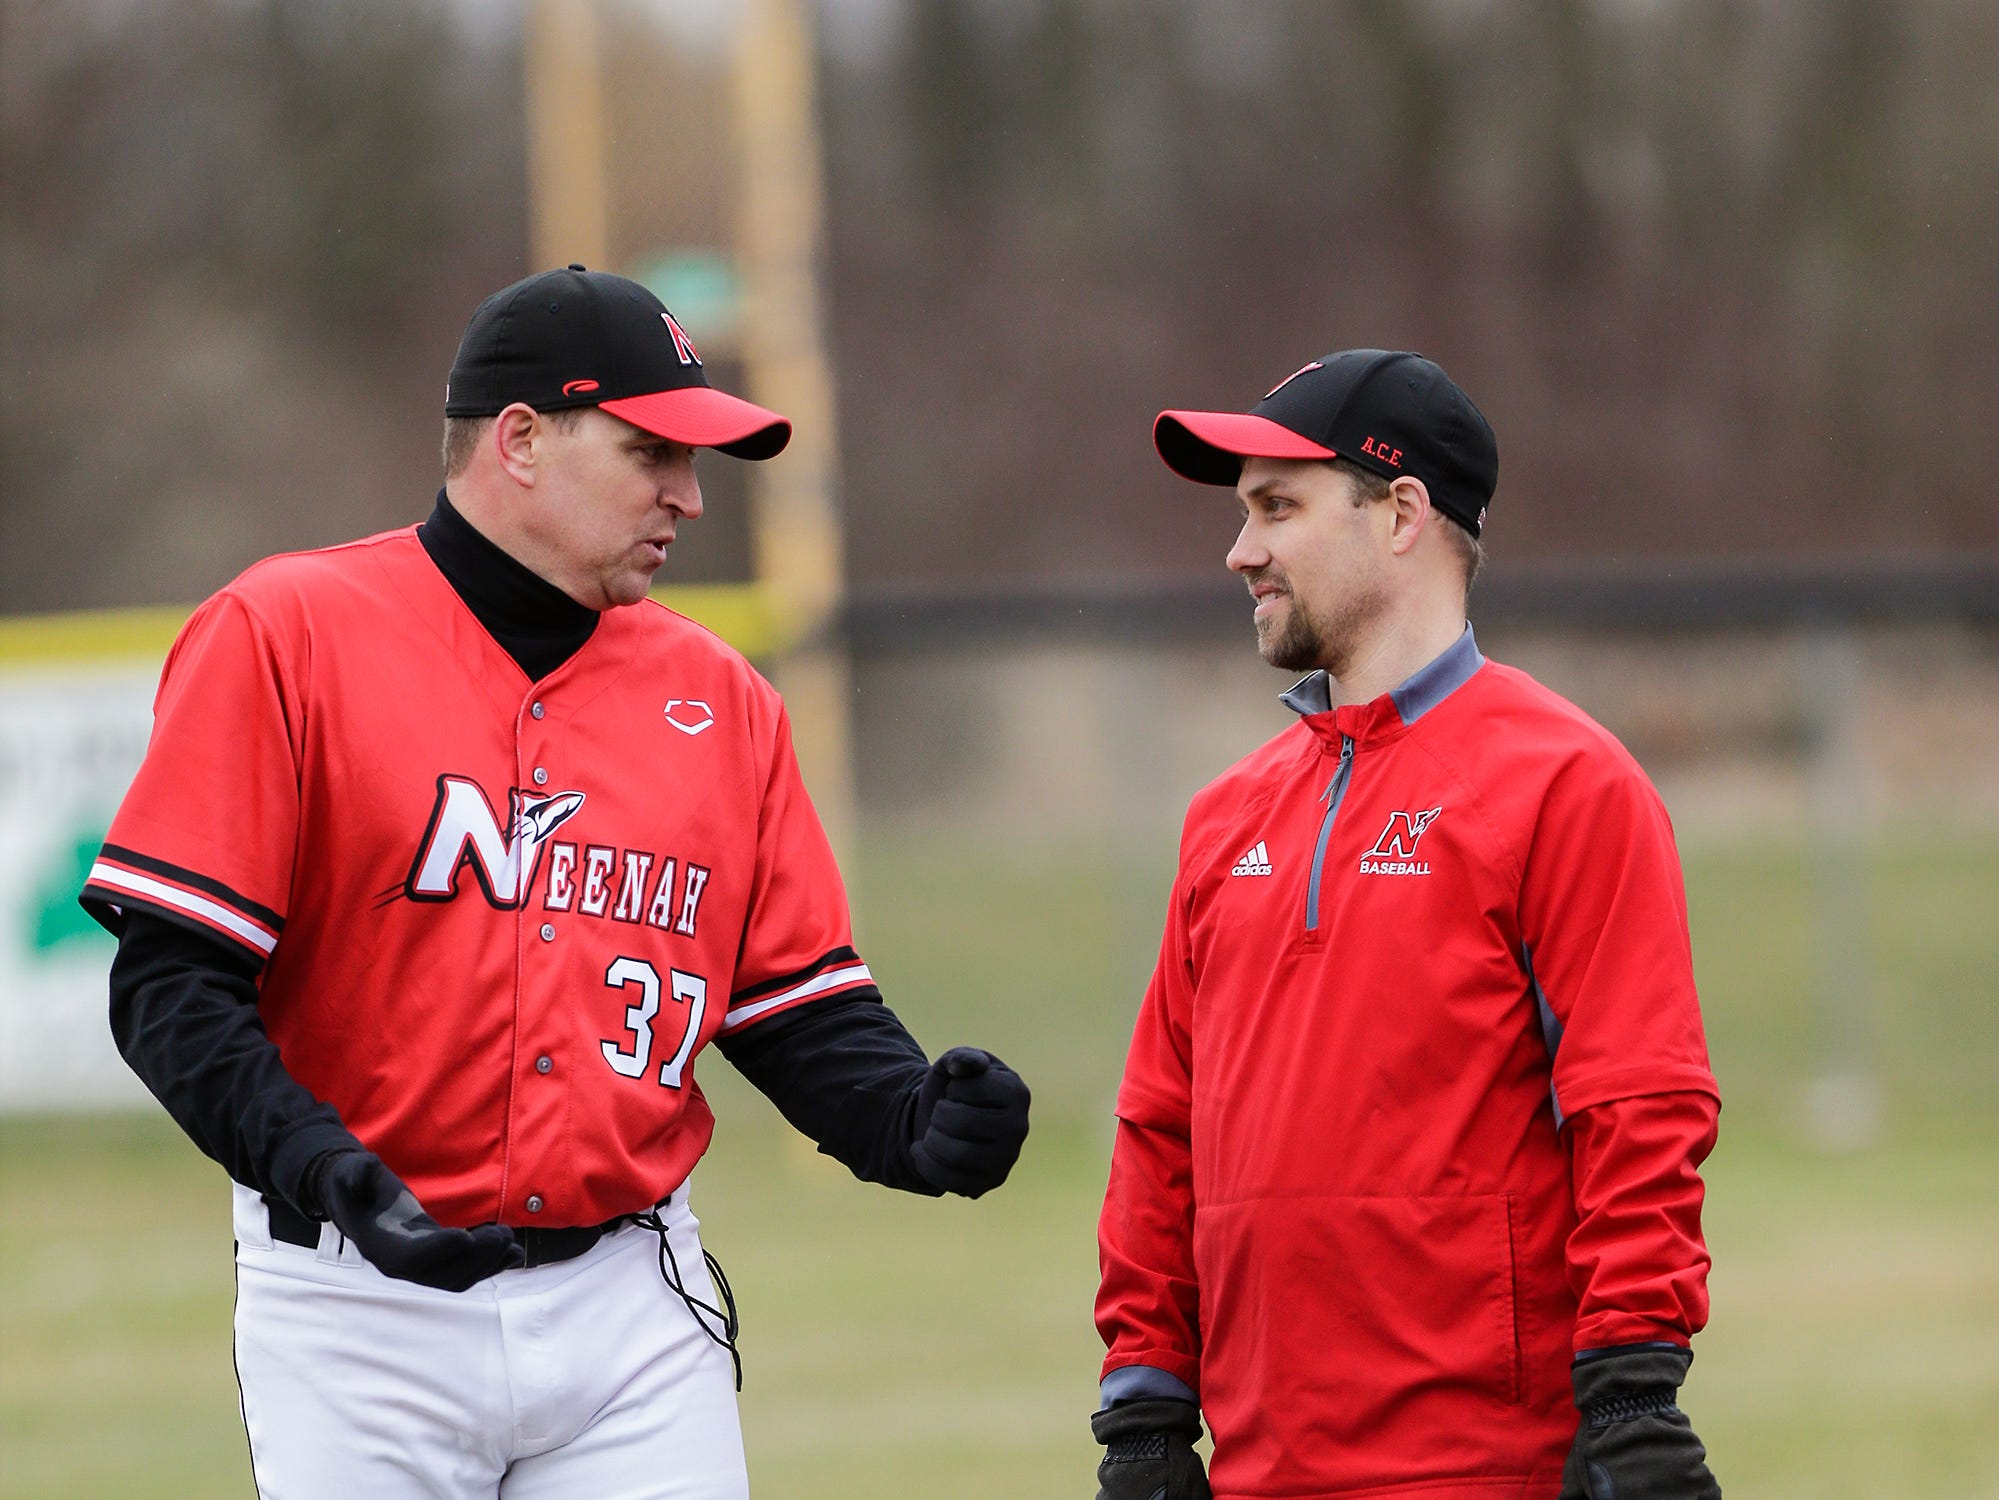 Neenah High School baseball's head coach Jack Taschner talks with assistant coach James Moen during their game against Fond du Lac High School Thursday, April 18, 2019 in Fond du Lac, Wis. Doug Raflik/USA TODAY NETWORK-Wisconsin